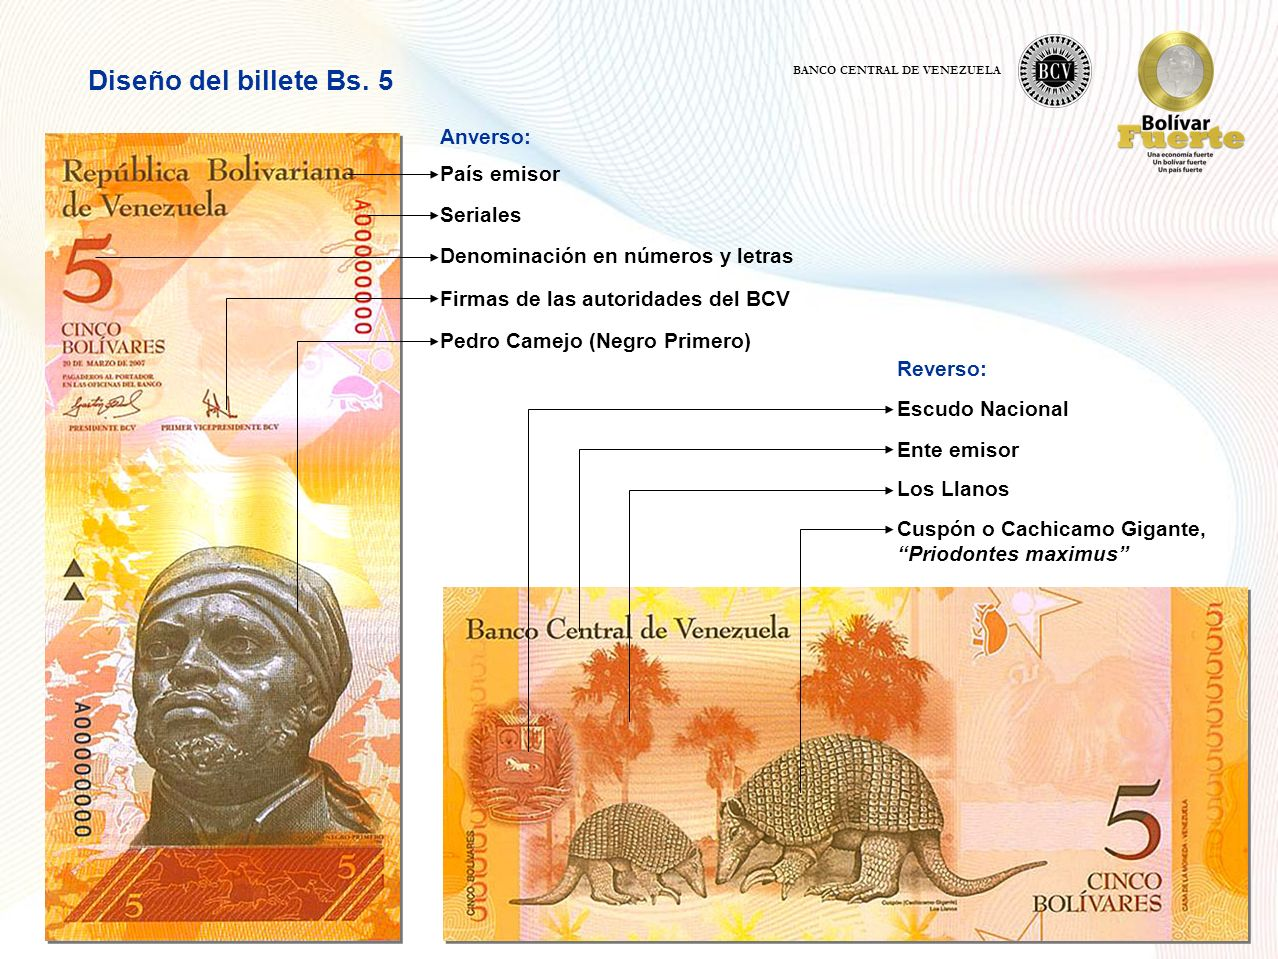 Anverso: Diseño del billete Bs.